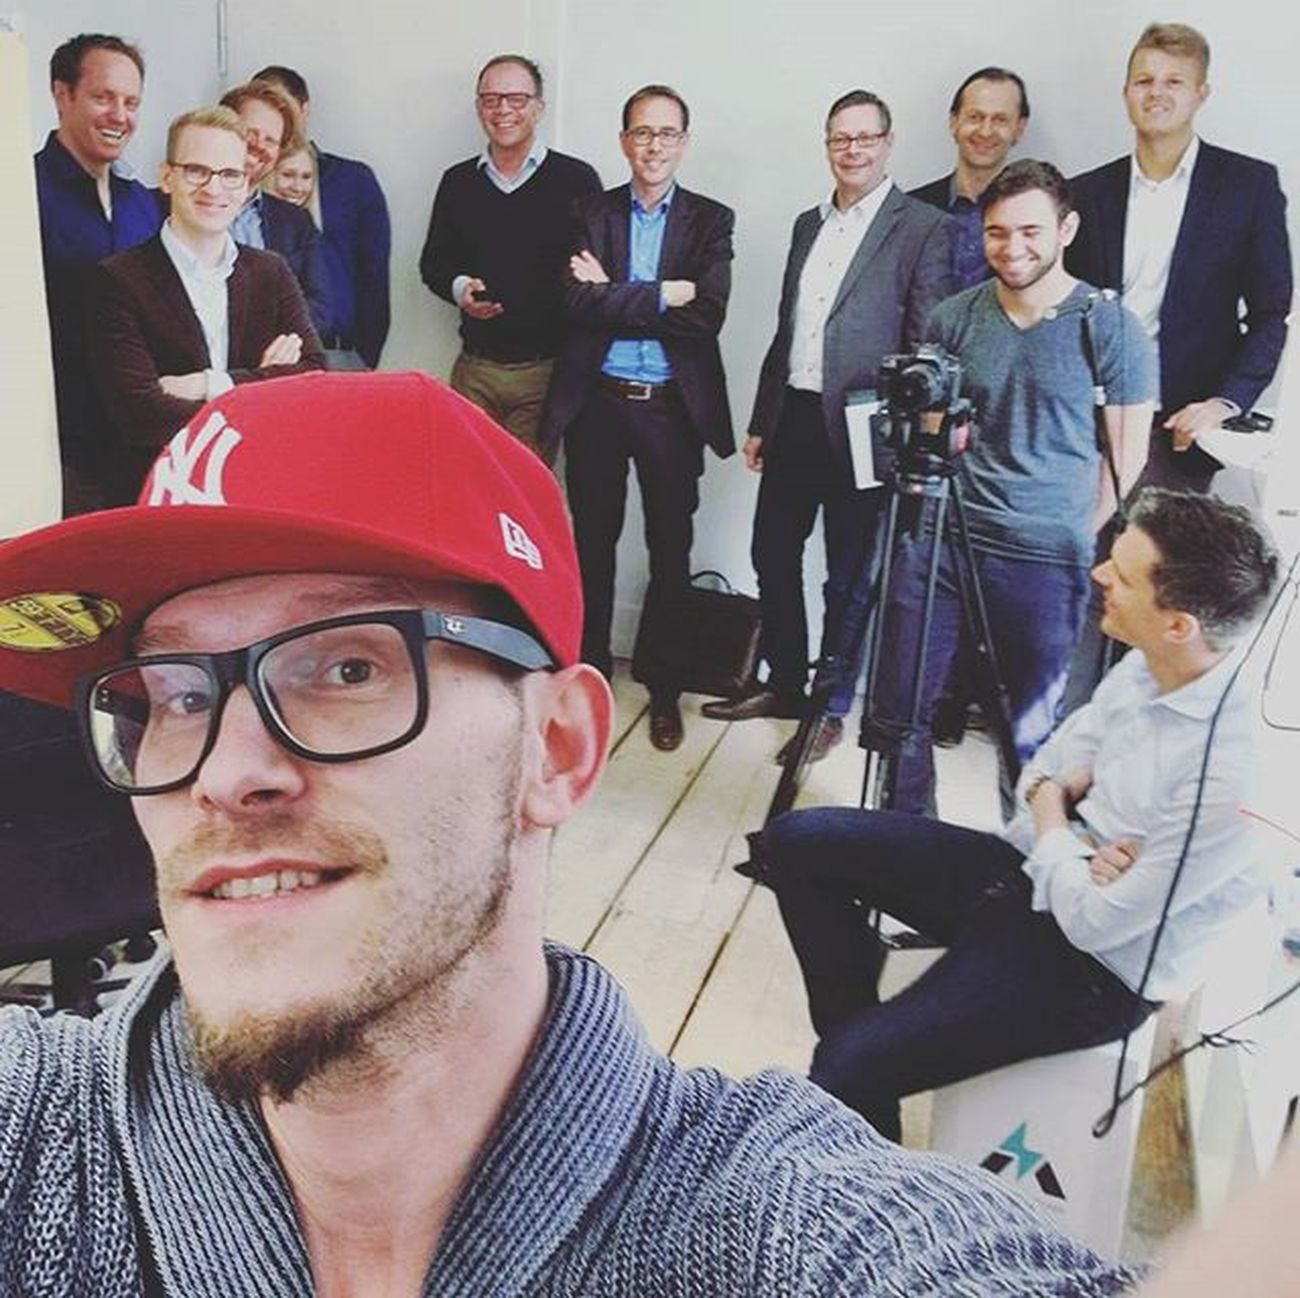 lets take a Selfie first @activatr SmilingFaces Happypitch Activatr Stuttgart Beschde